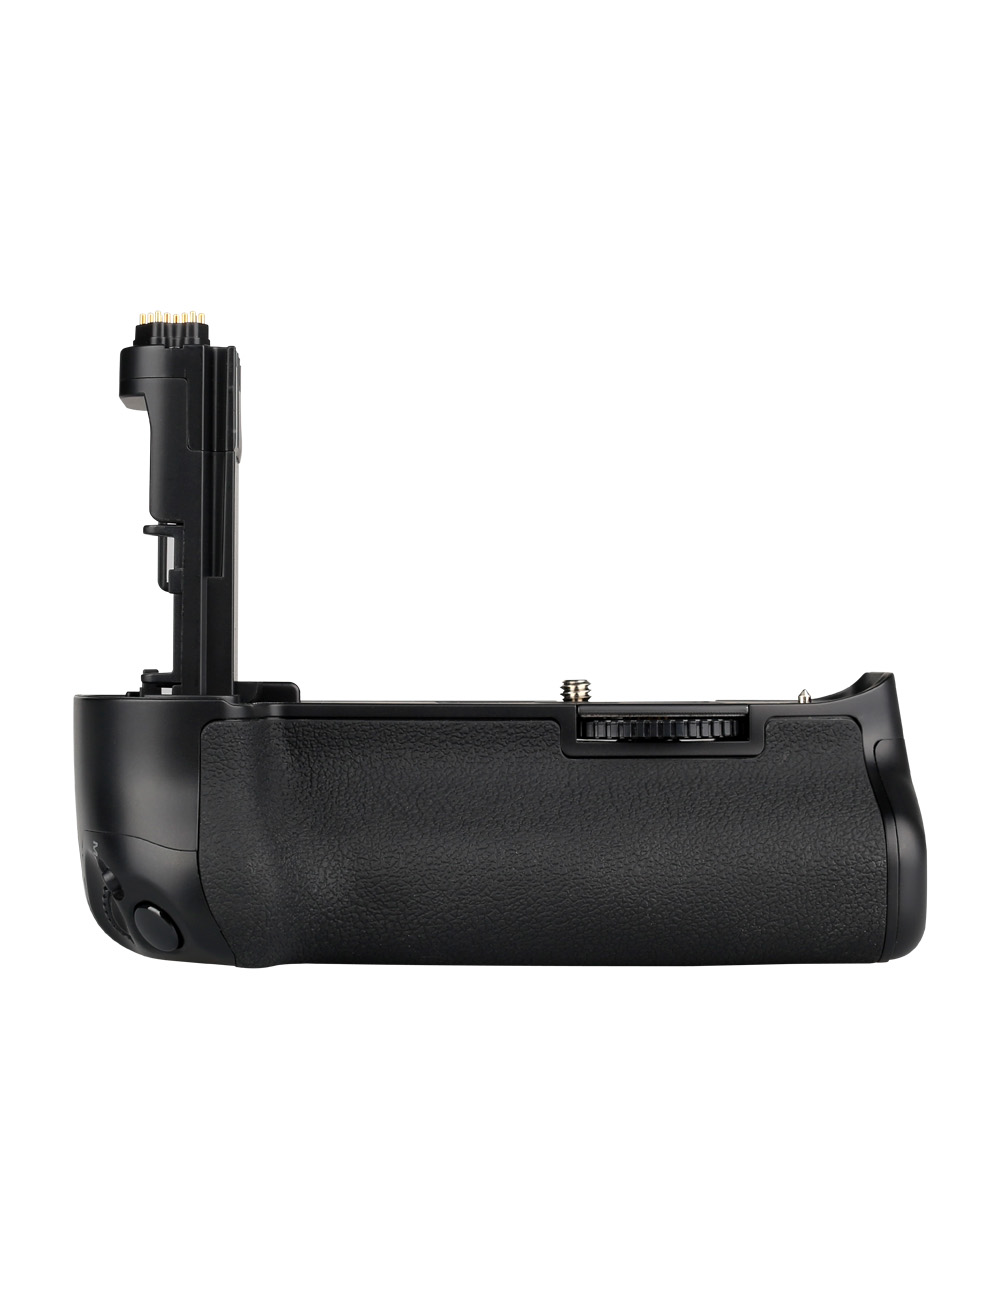 MEKE Meike MK-5DS R Battery Grip for EOS Canon 5D Mark III/5Ds/5DS R FSK 2.4G HZ with LCD Wireless саксофон mark r markr